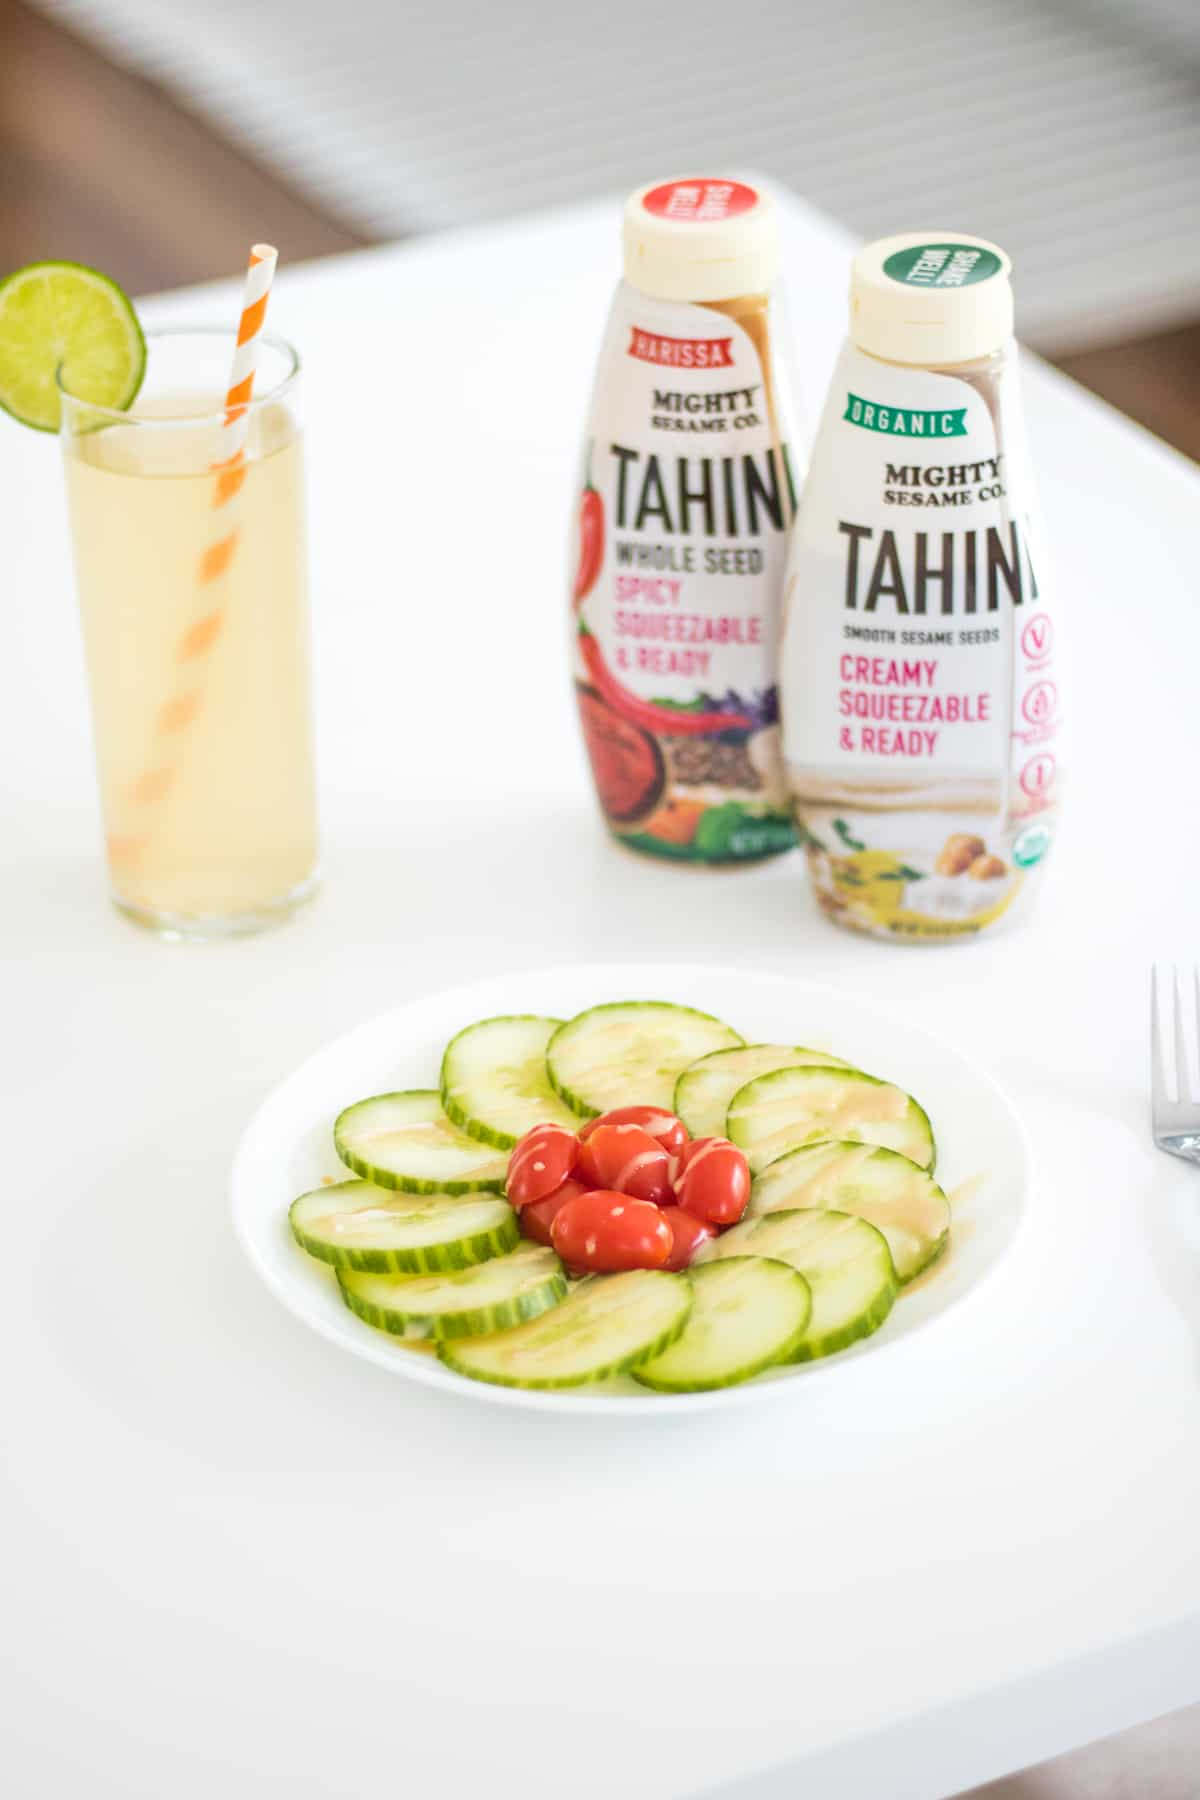 Tomato cucumbers salad with 2 bottles of squeezable tahini and a glass of sparkling water in the background